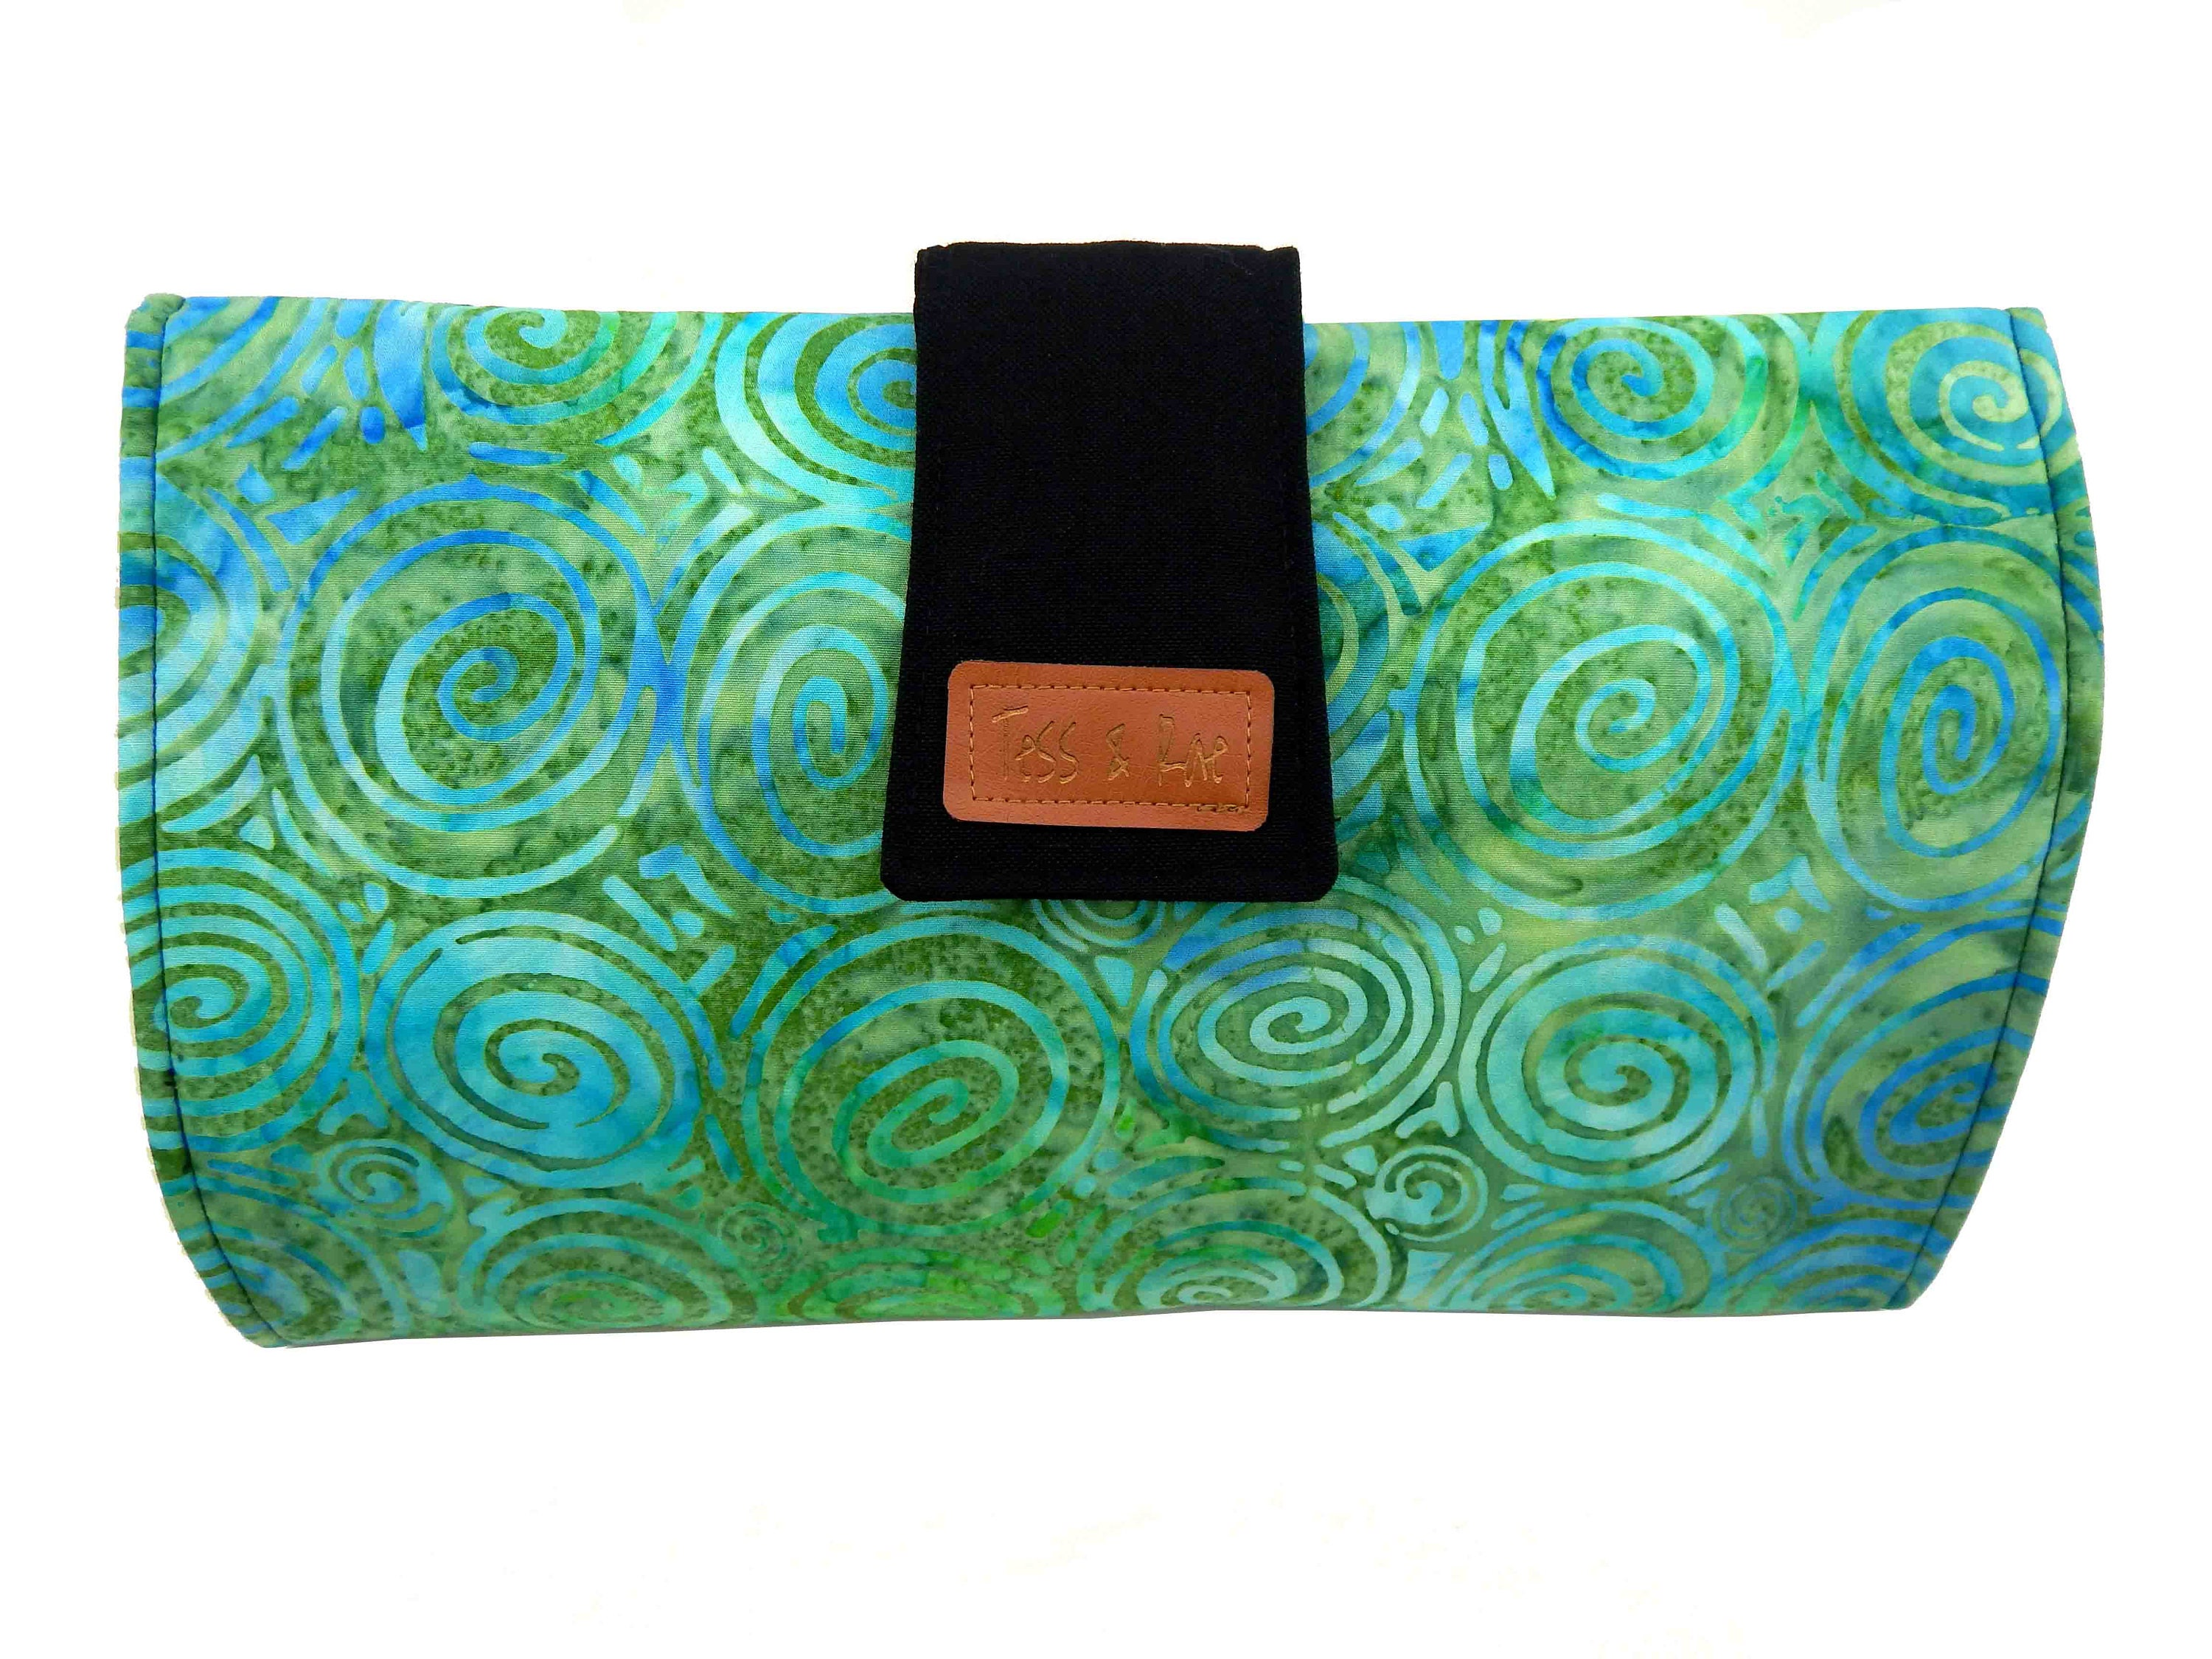 nappy bag diaper bag Baby shower gift laminate cotton Tess /& Rae portable Baby Change Mat Clutch fold out changemat nappy wallet